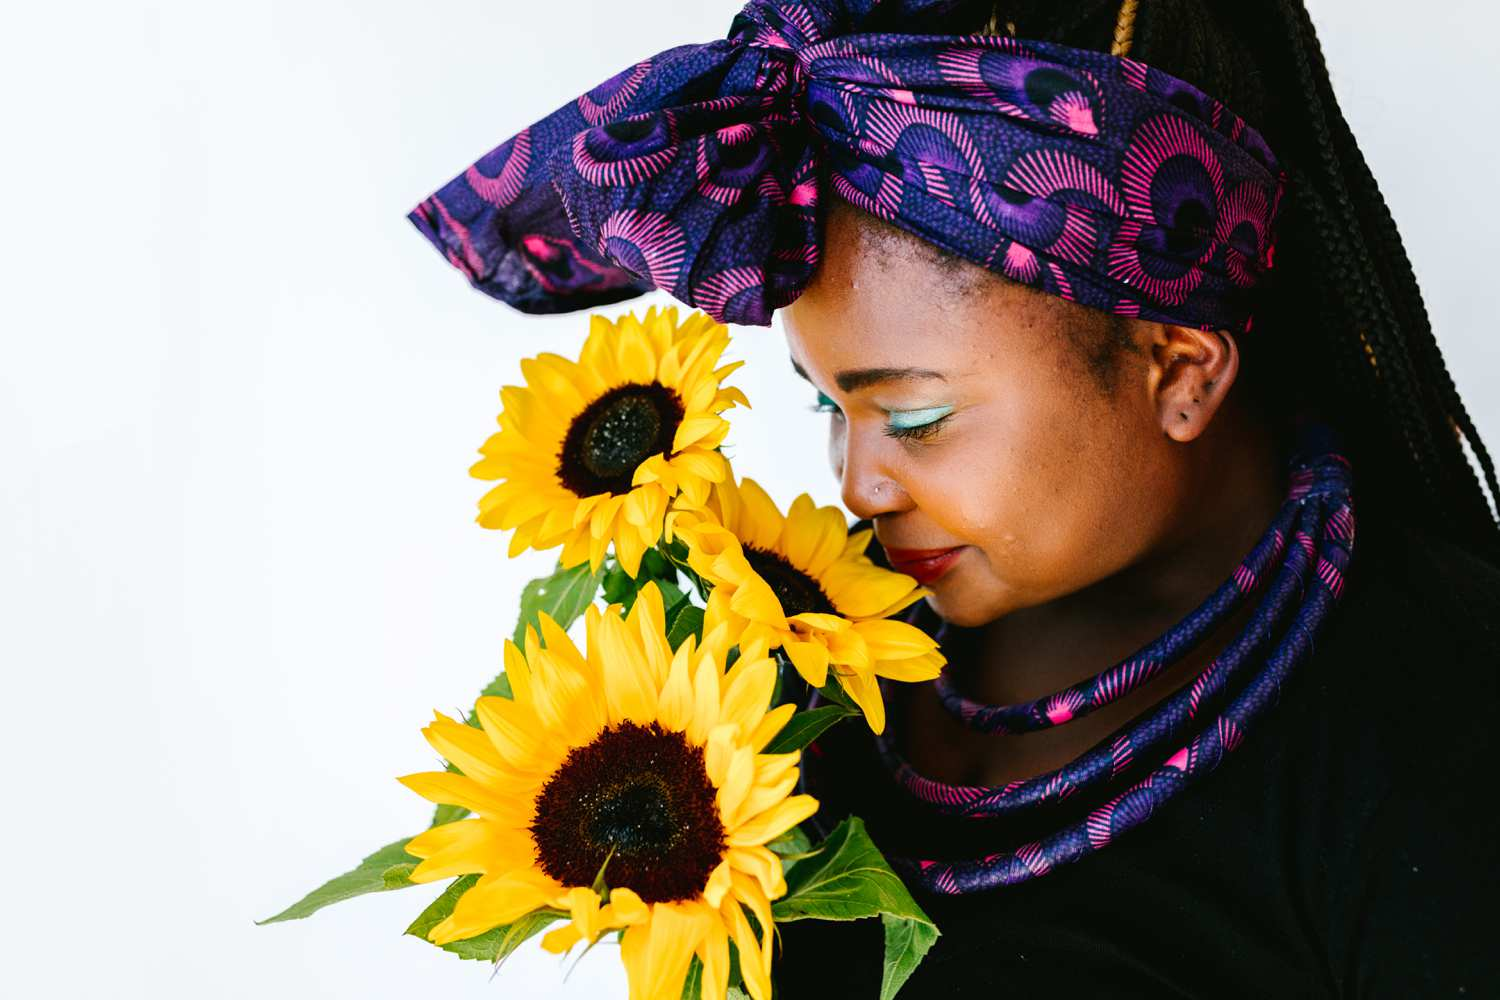 Sunflowers Newcastle Commercial Photography